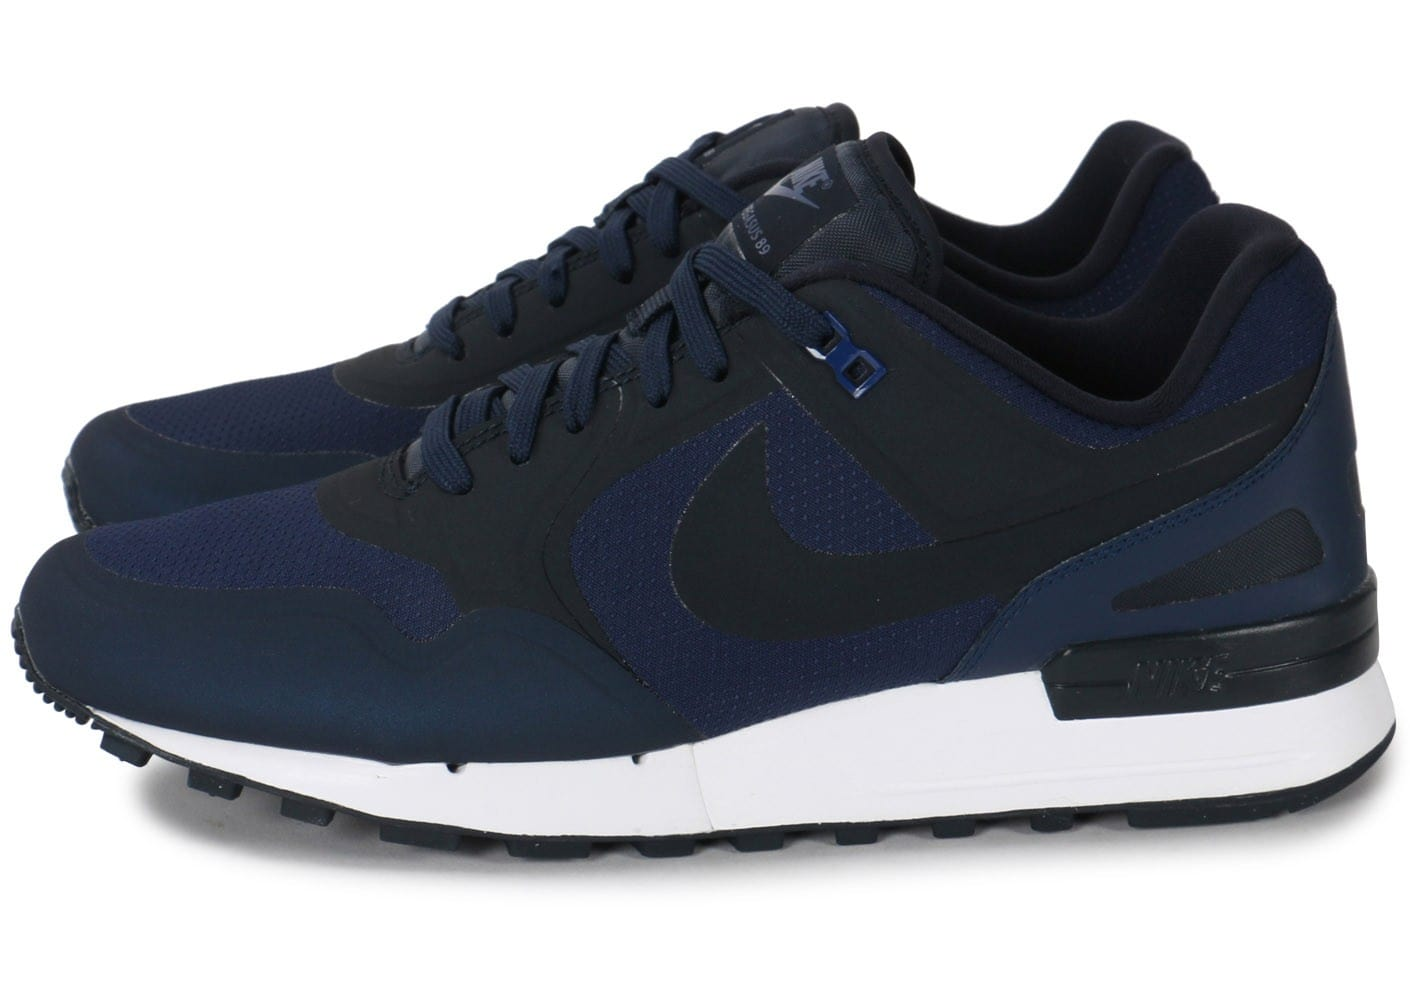 nike air pegasus 89 no sew bleue chaussures homme chausport. Black Bedroom Furniture Sets. Home Design Ideas